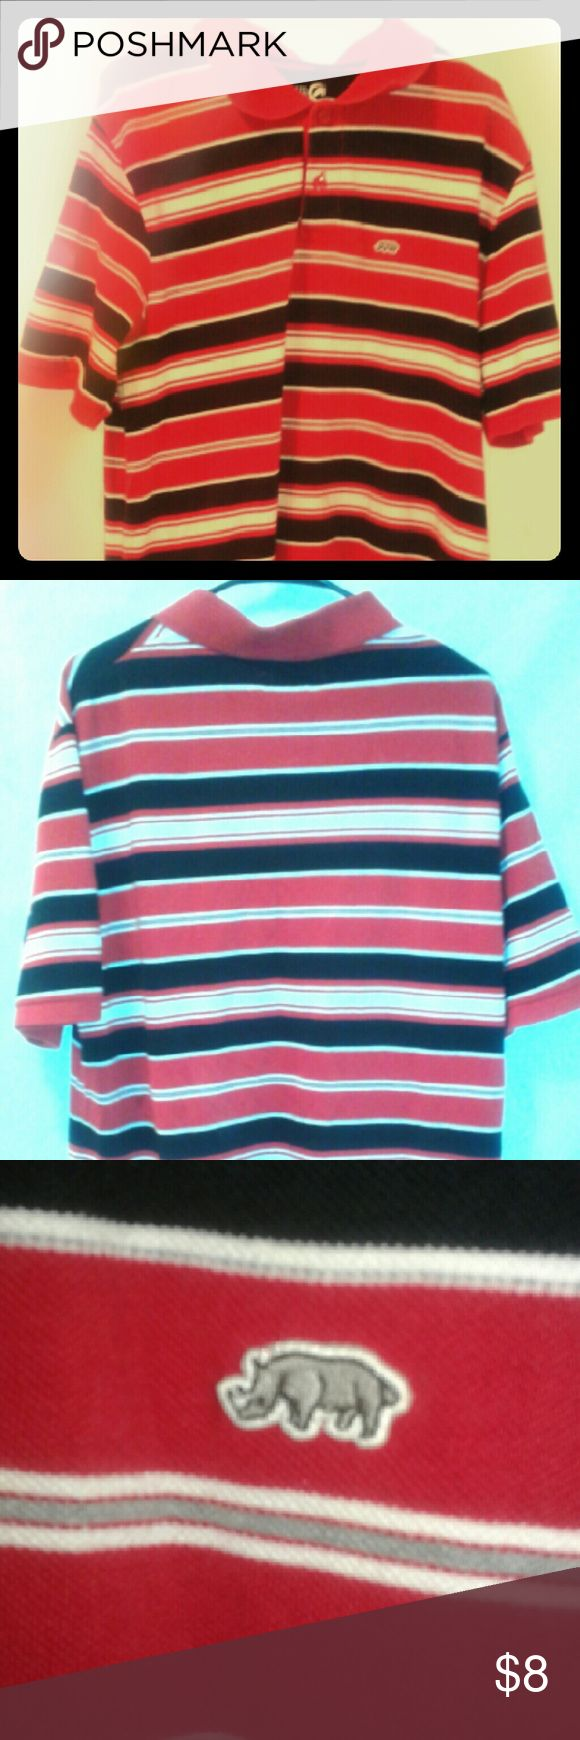 Ecko Unltd Large stripped Polo shirt Mens Pre owned Mens Red White and Black stripped Polo shirt.  Shirt is in great condition no stains, tears, marks, or damage.  The shirt is Large, made in India.  Normal wear. Ecko Unlimited Shirts Polos